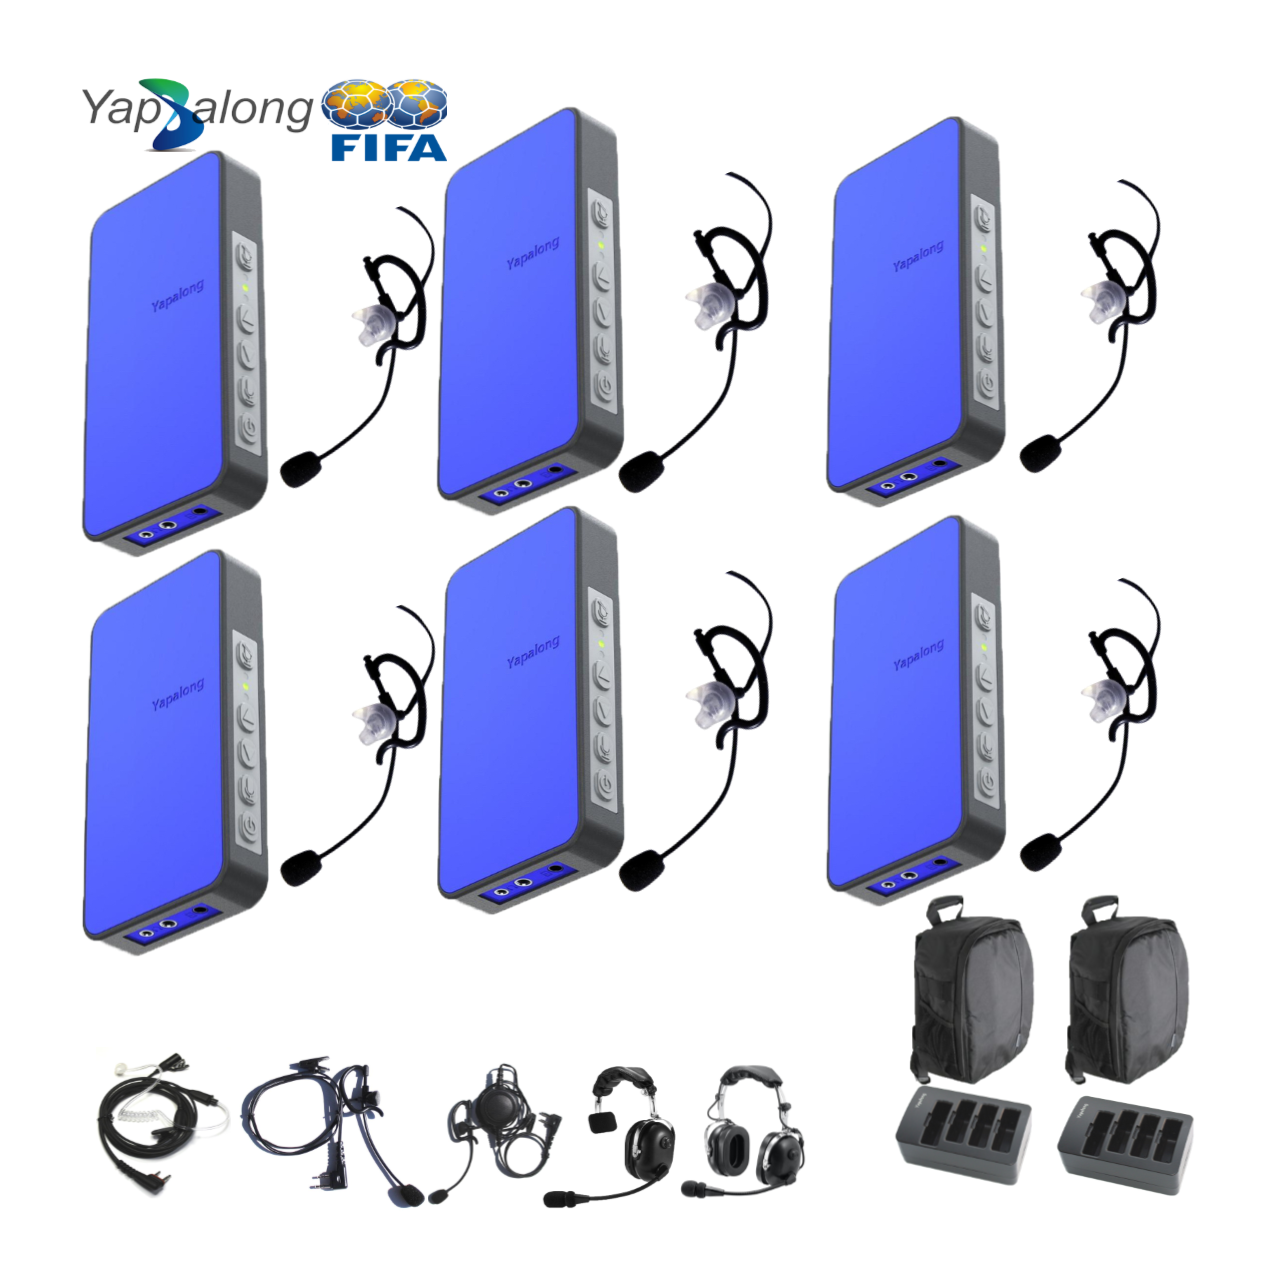 Yapalong 5000 (6-User) Complete Set Intercom Systems Intercom Systems